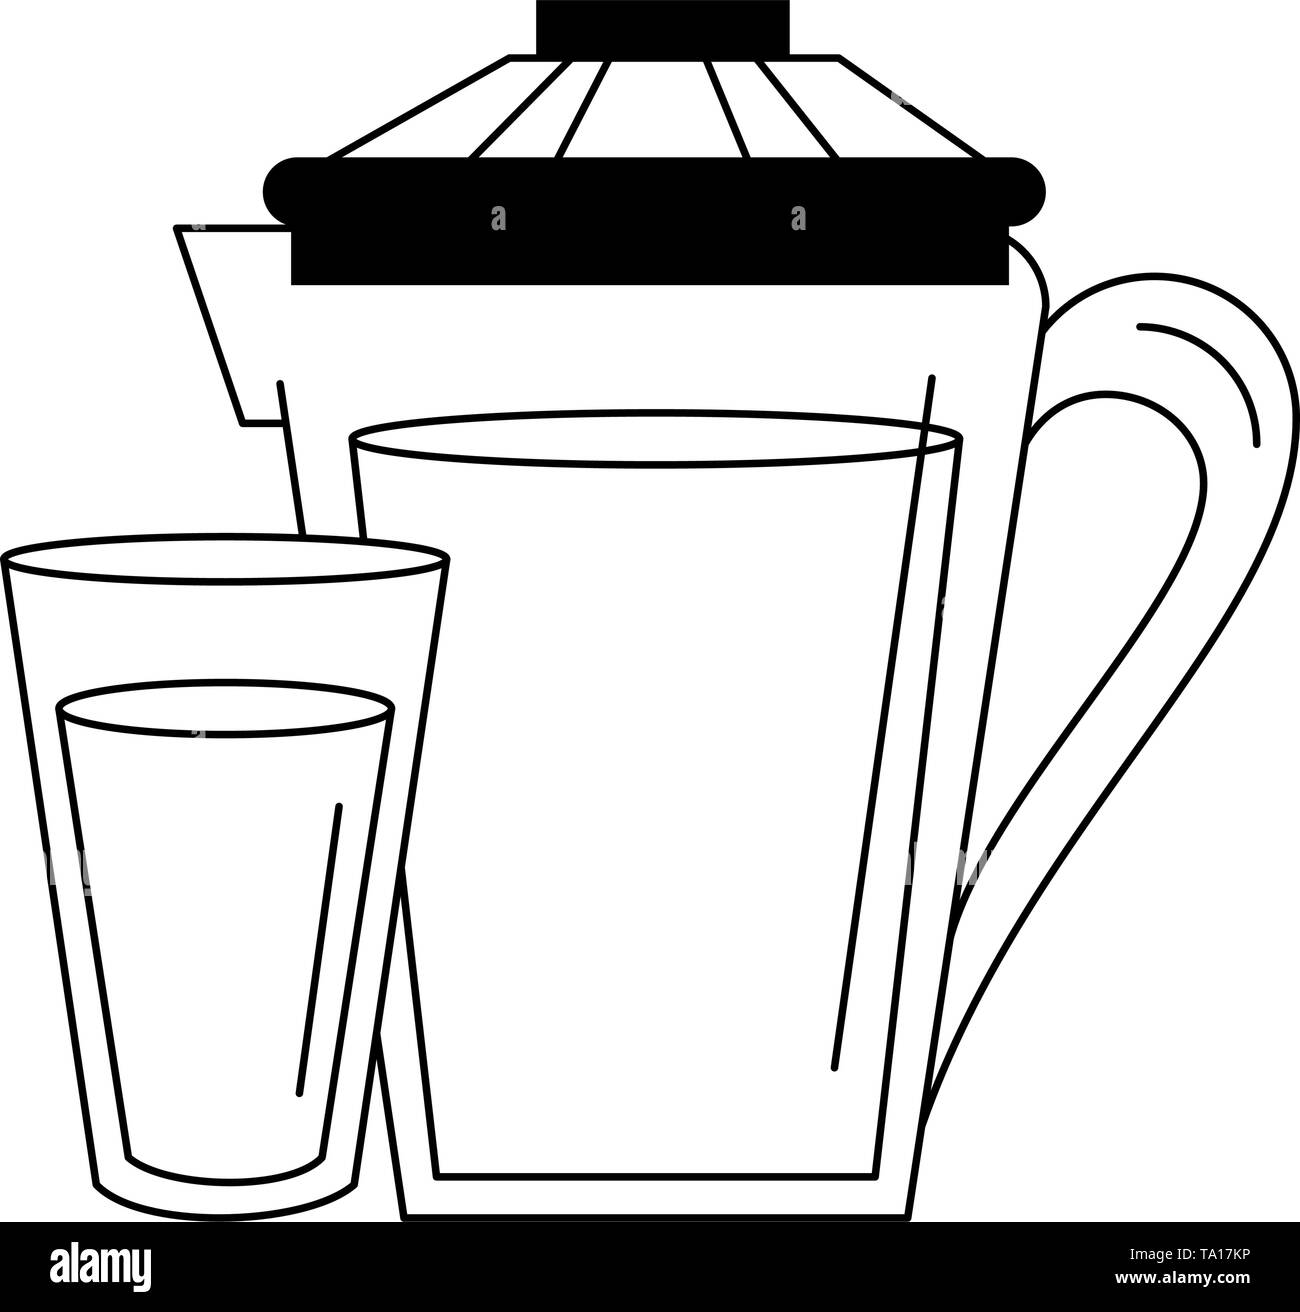 Orange juice cup and jar cartoon in black and white - Stock Image